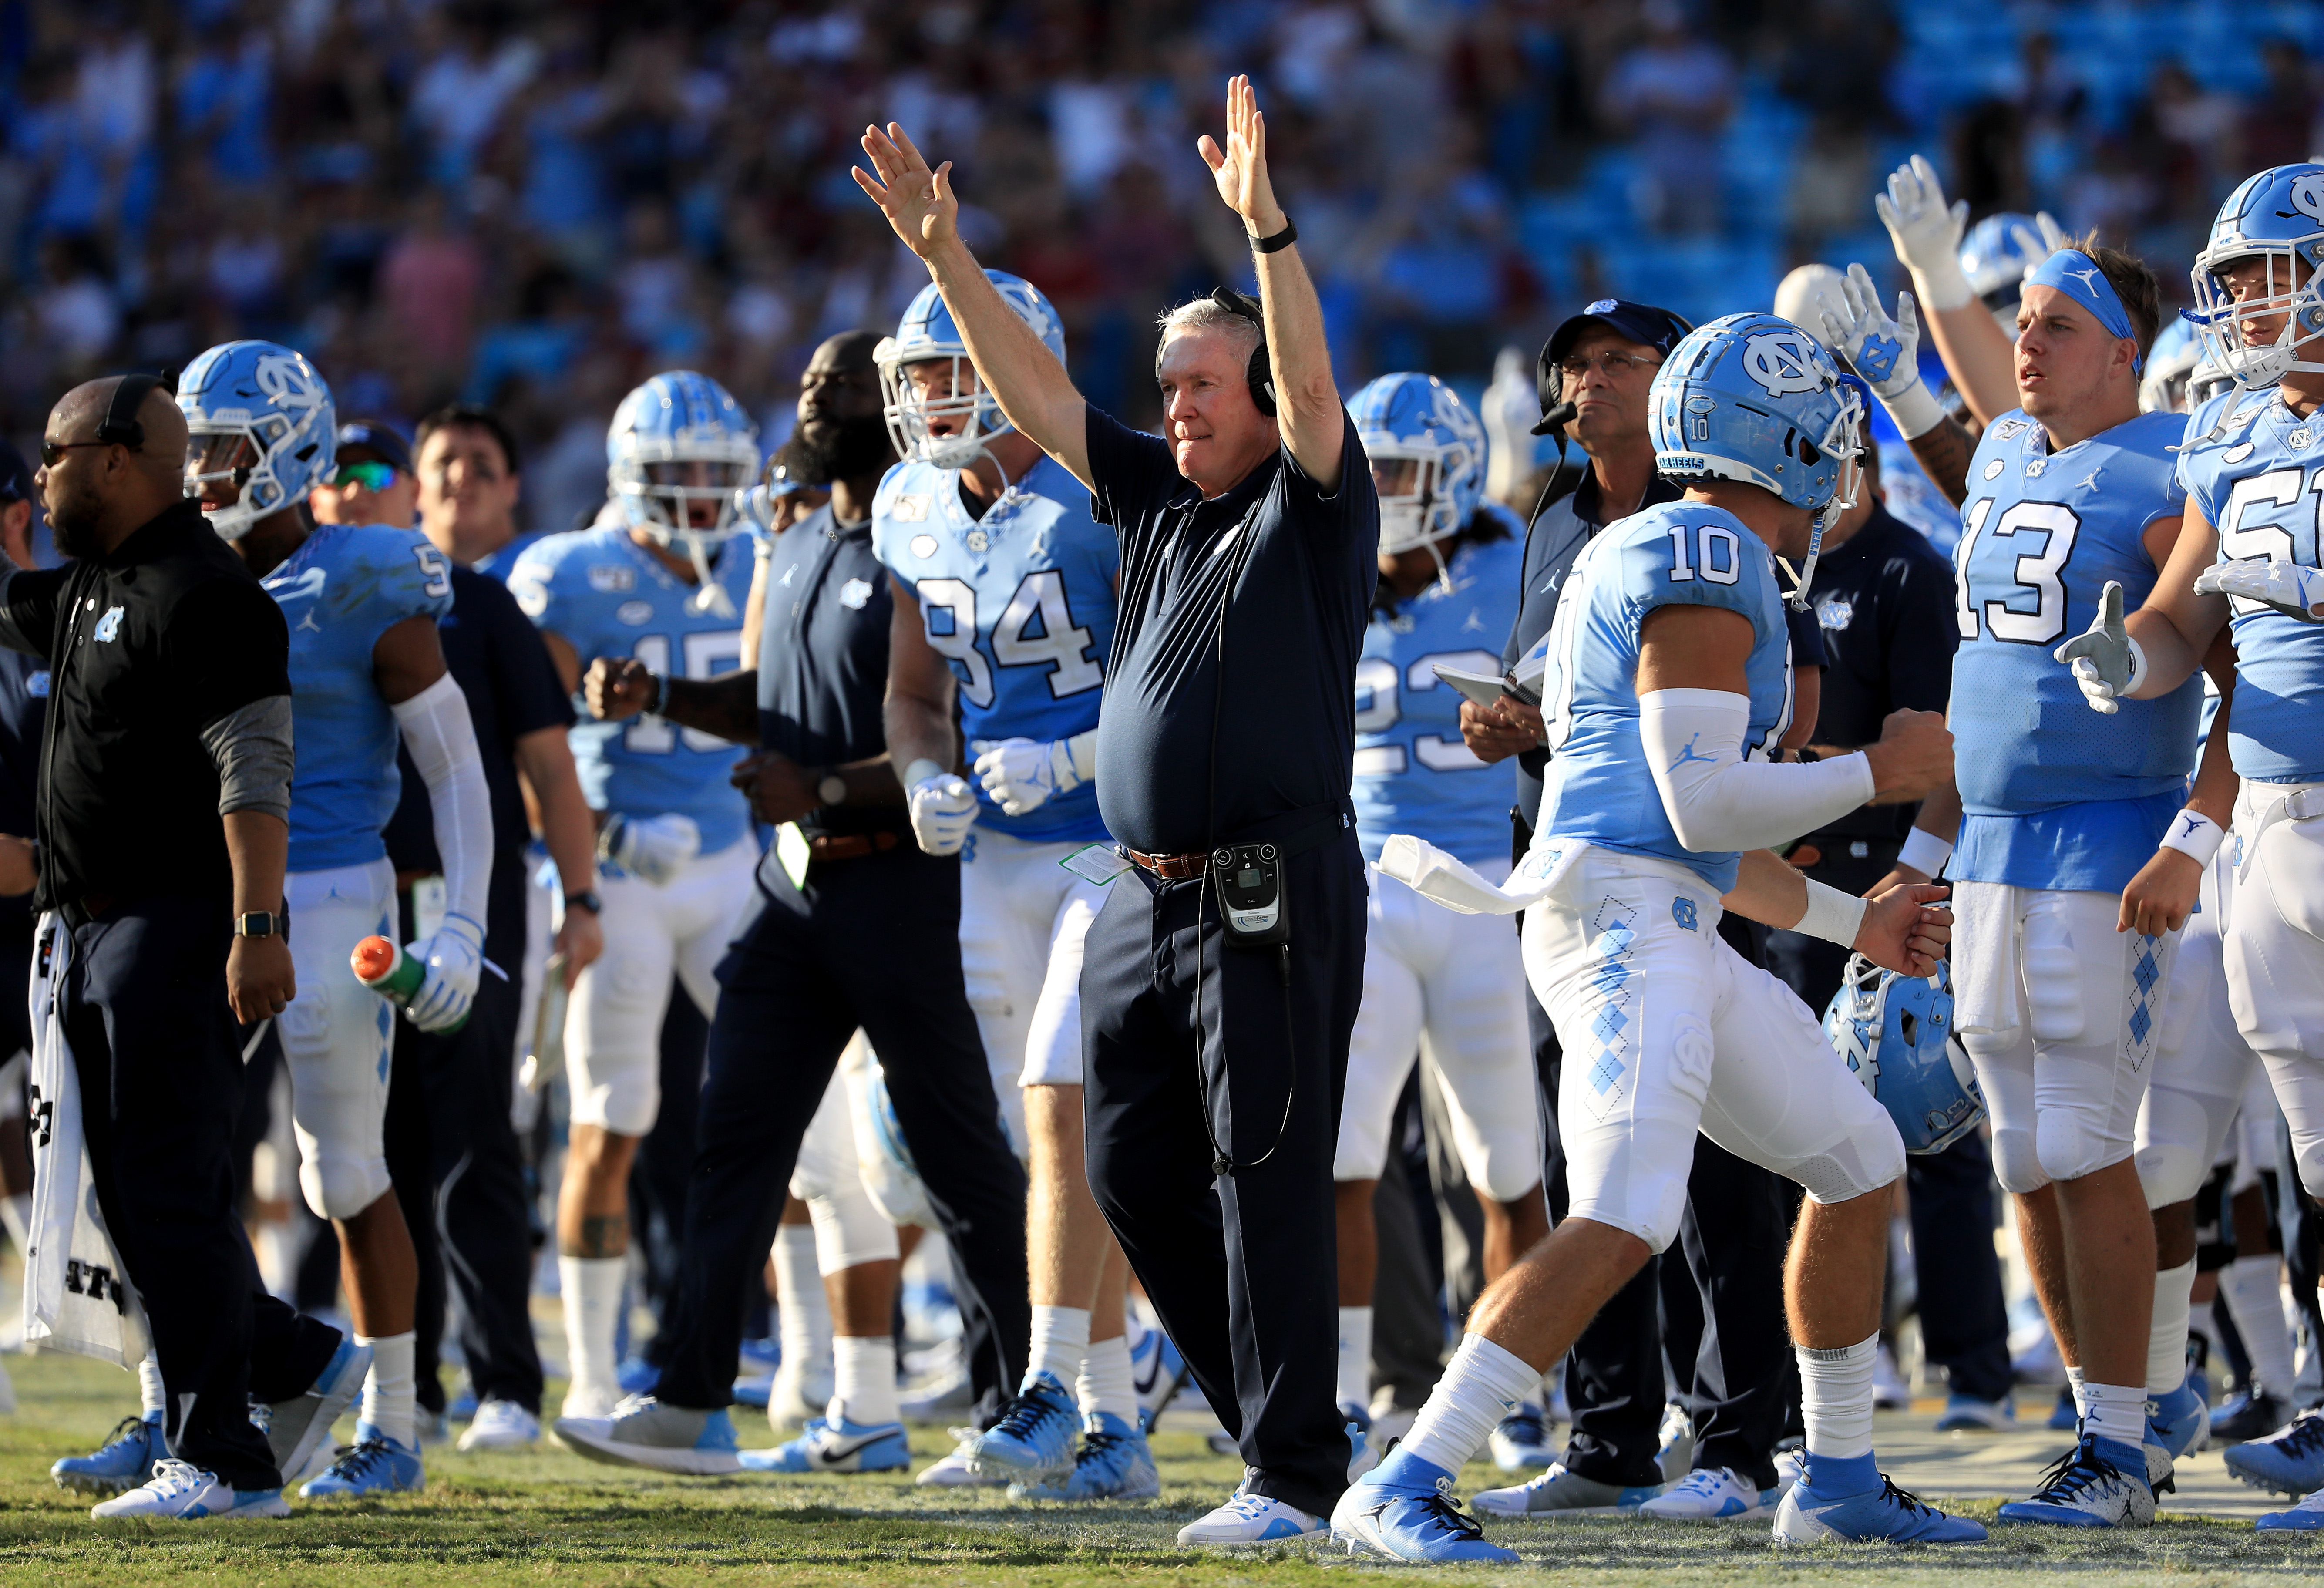 Head coach Mack Brown of the North Carolina Tar Heels reacts after his team scores against the South Carolina Gamecocks during the Belk College Kickoff game at Bank of America Stadium on August 31, 2019 in Charlotte, North Carolina.